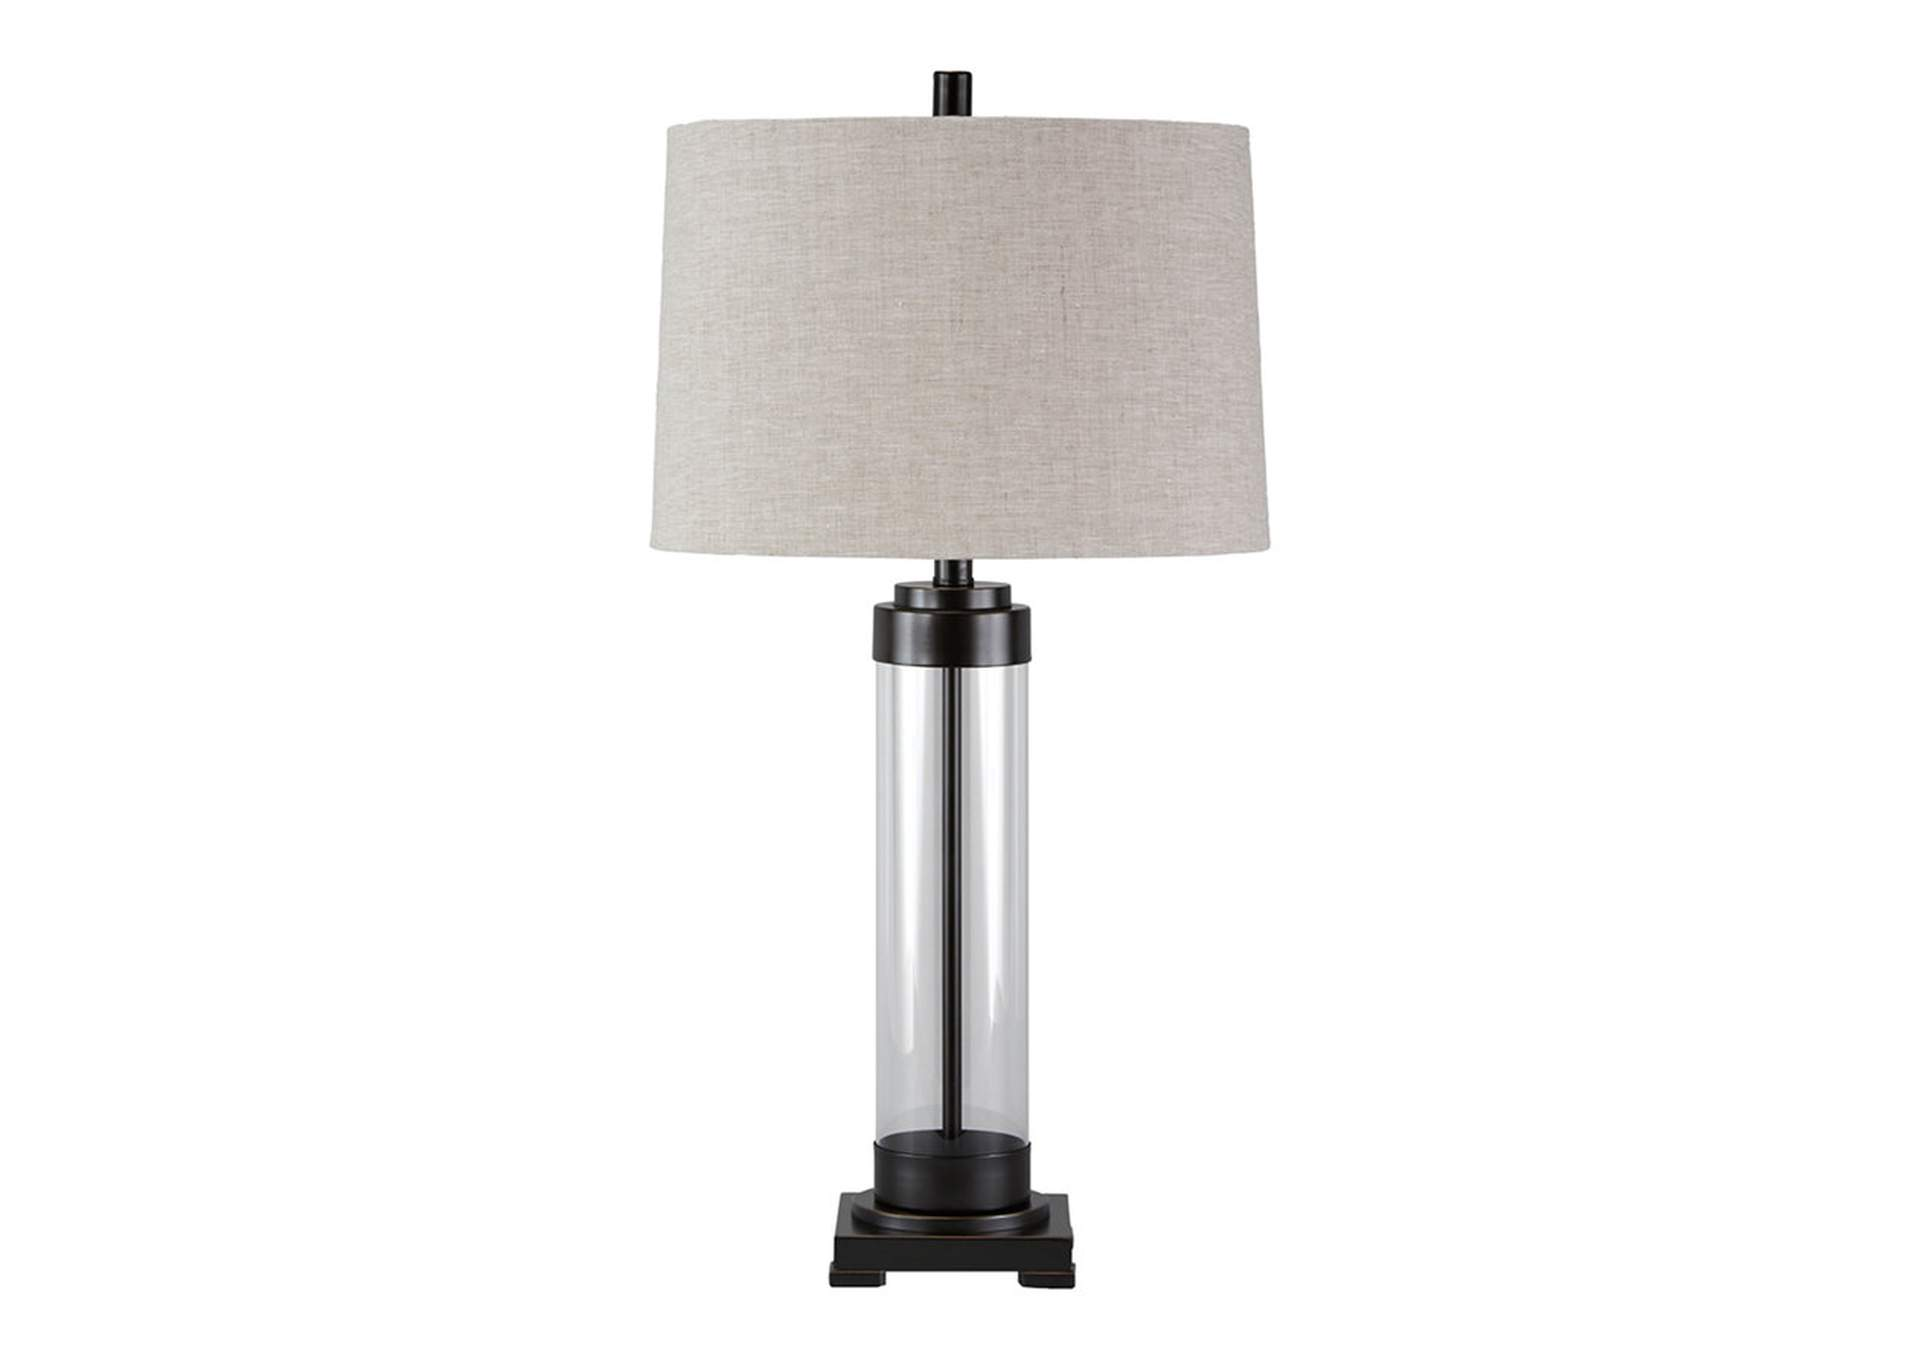 Talar Clear/Bronze Finish Glass Table Lamp,Direct To Consumer Express